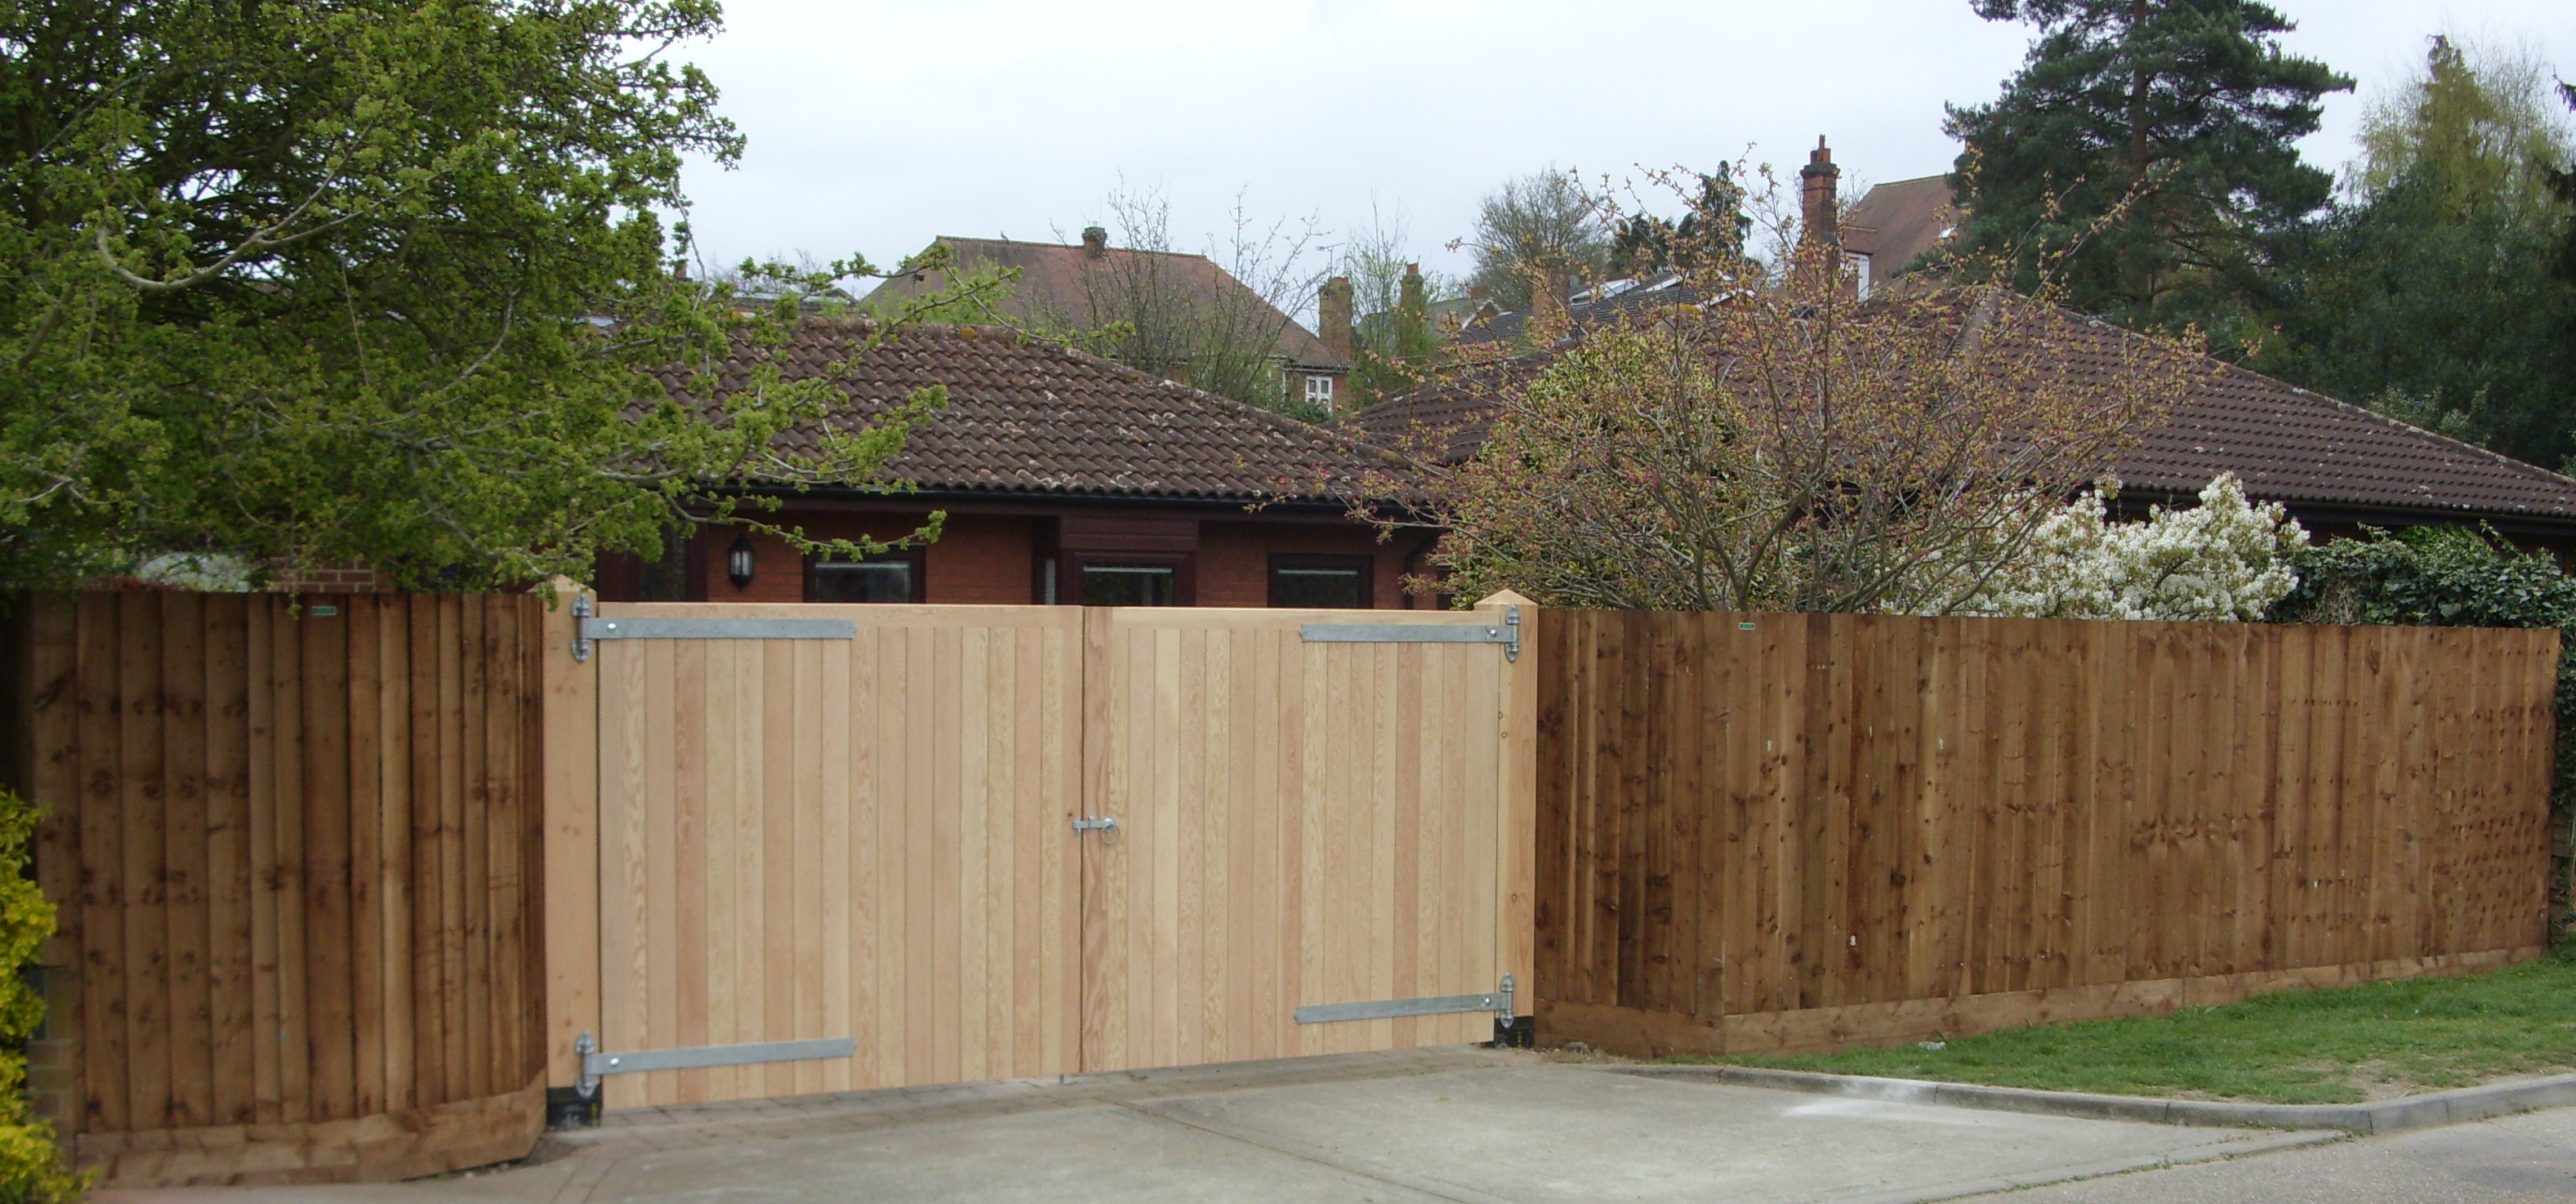 Blyth gates without raised manors in Douglas Fir timber in a run of Closeboard fencing